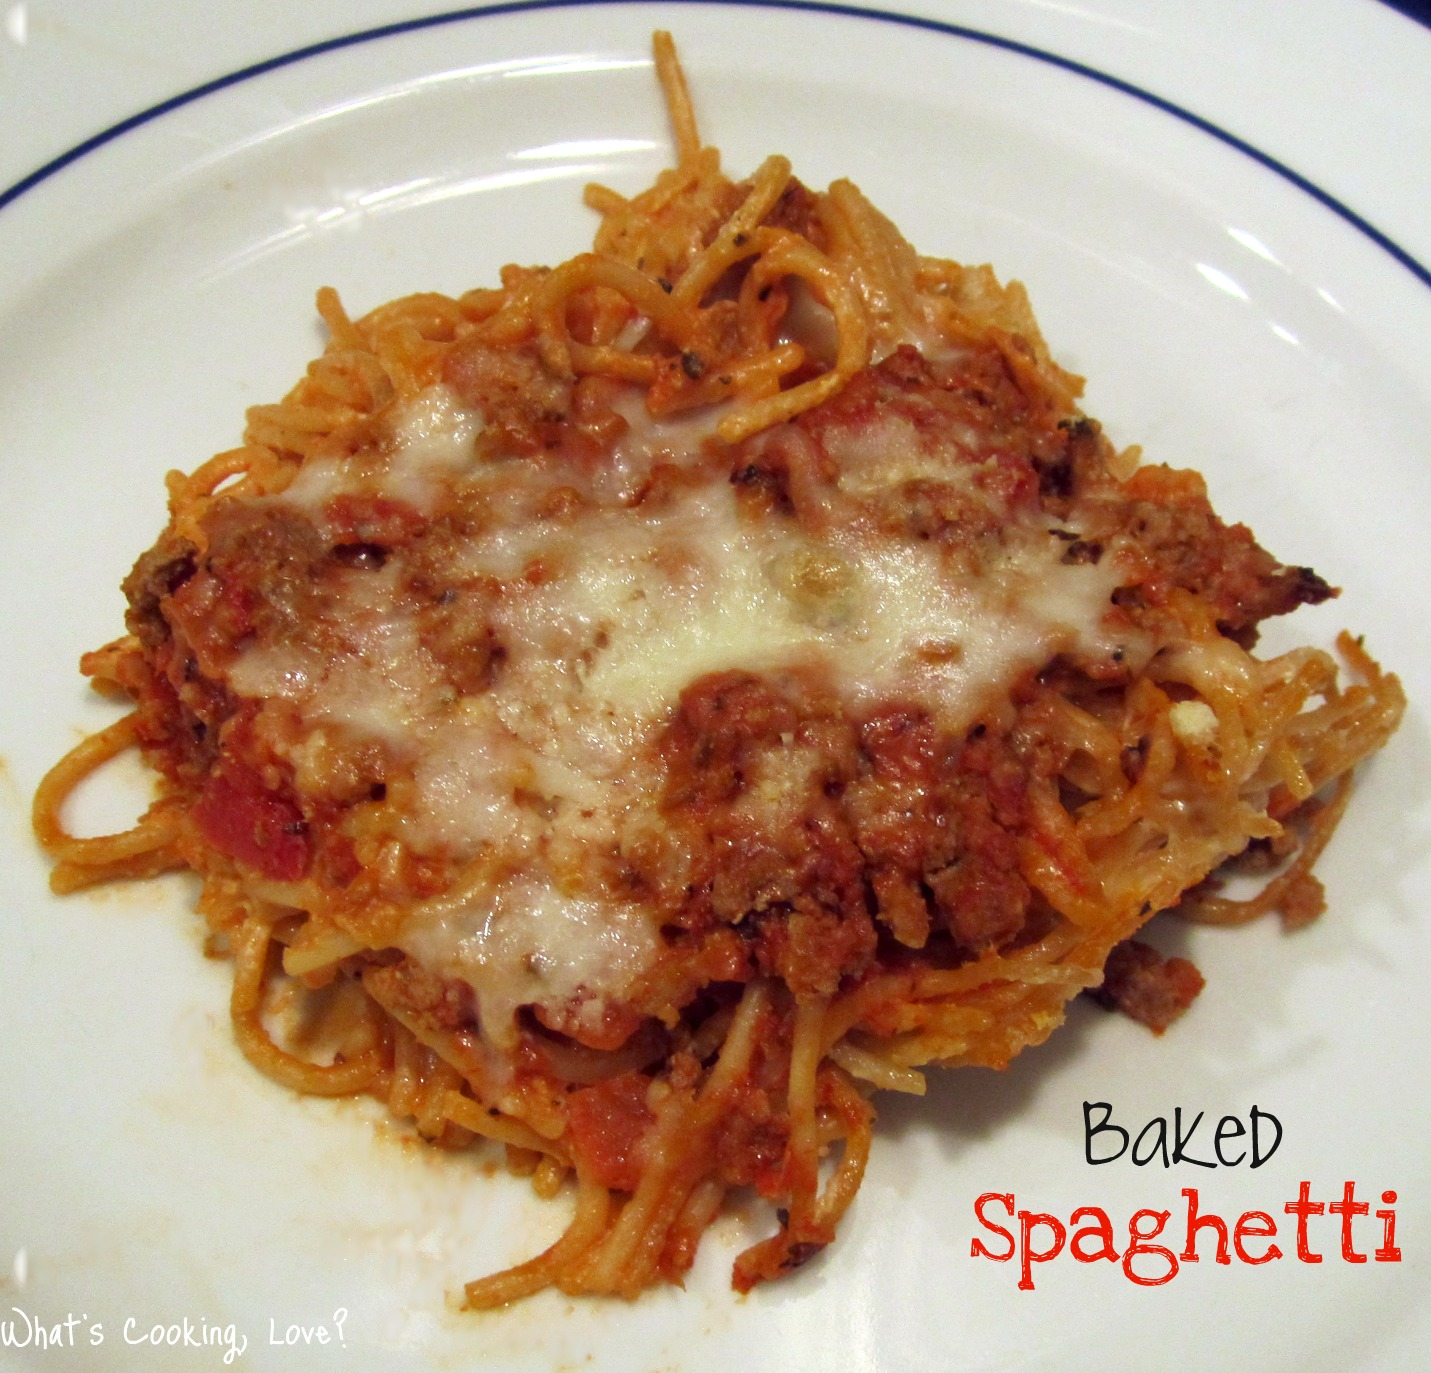 Baked Spaghetti - Whats Cooking Love?